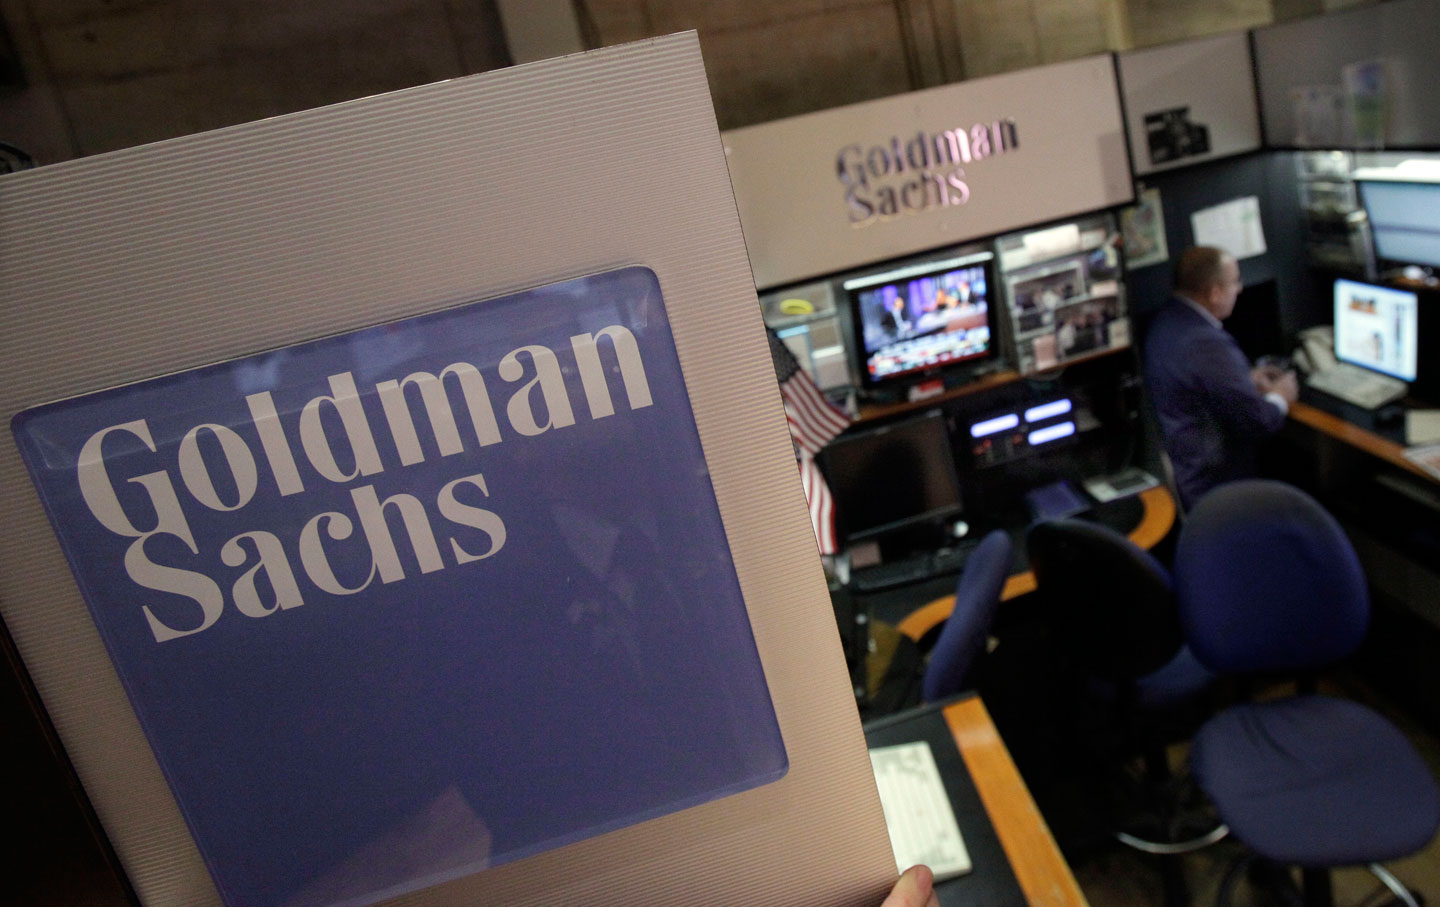 How Goldman Sachs Profited From the Greek Debt Crisis | The